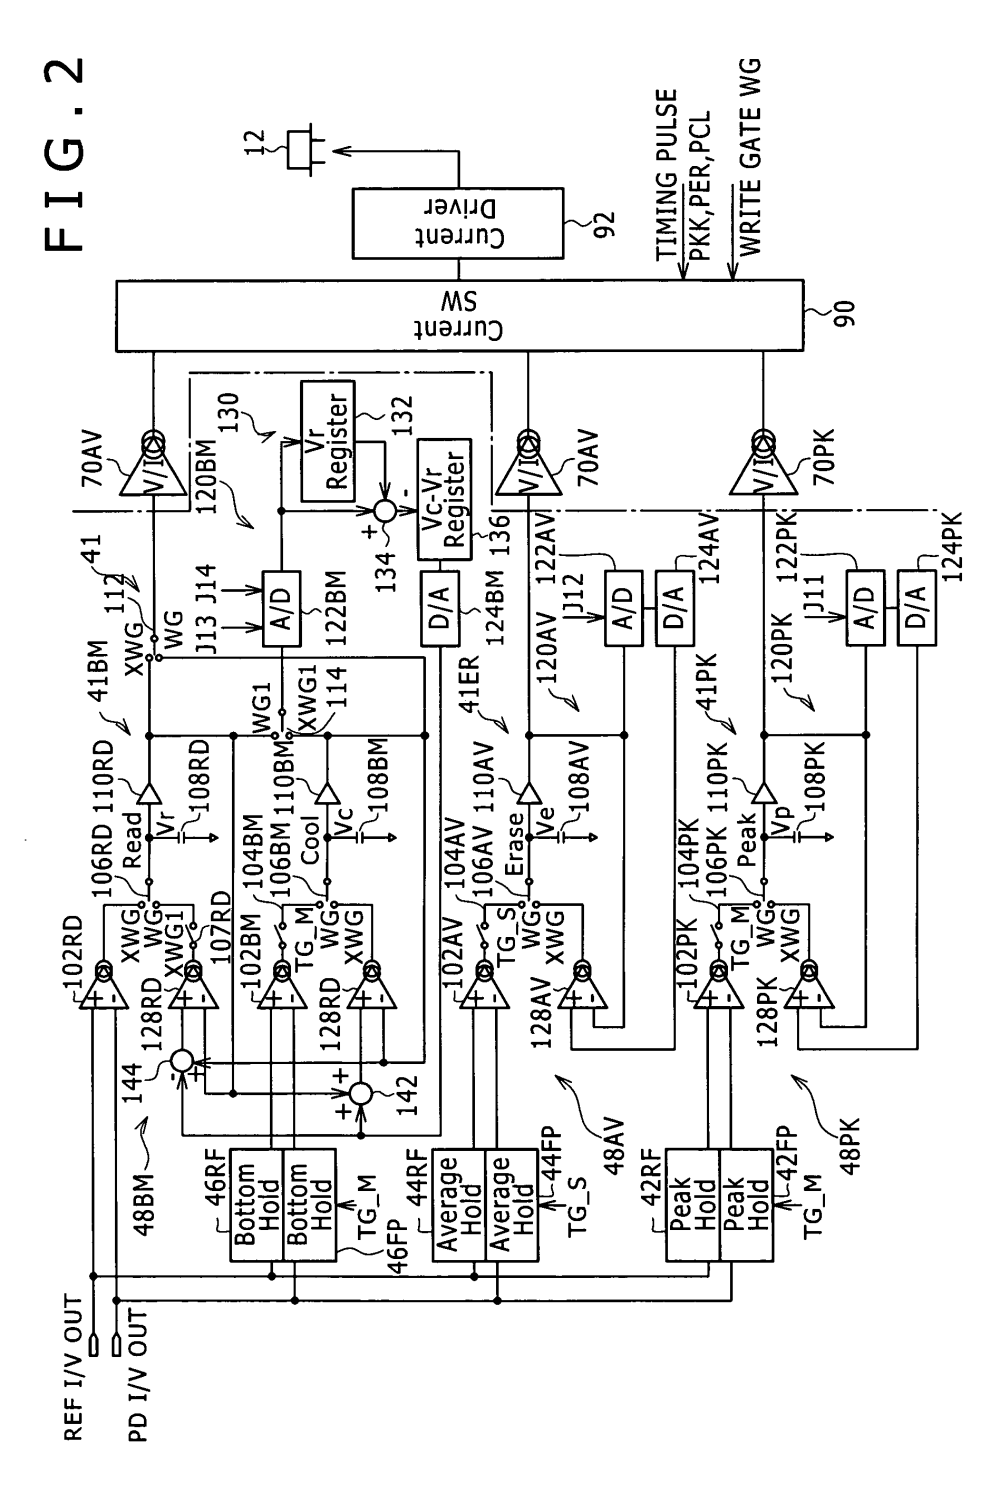 medium resolution of dodge ram 47re transmission diagrams imageresizertool com dodge 47re transmission diagram 47rh transmission diagram